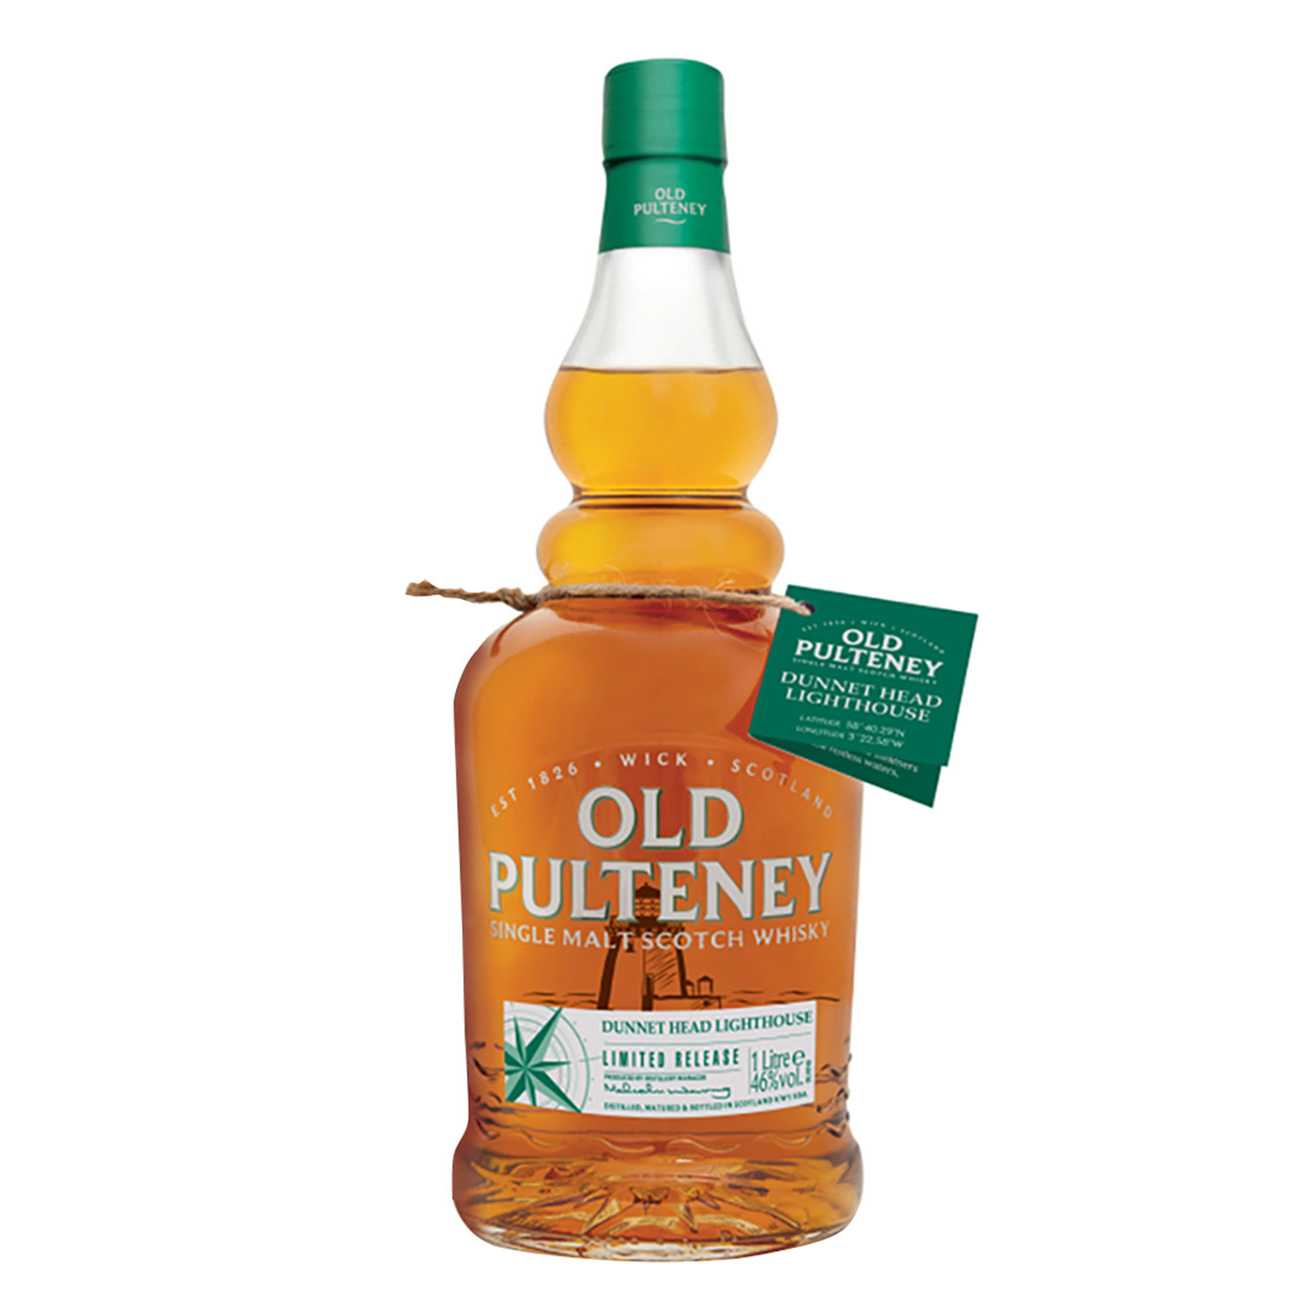 Dunnet Head Lighthouse 1000 Ml de la Old Pulteney